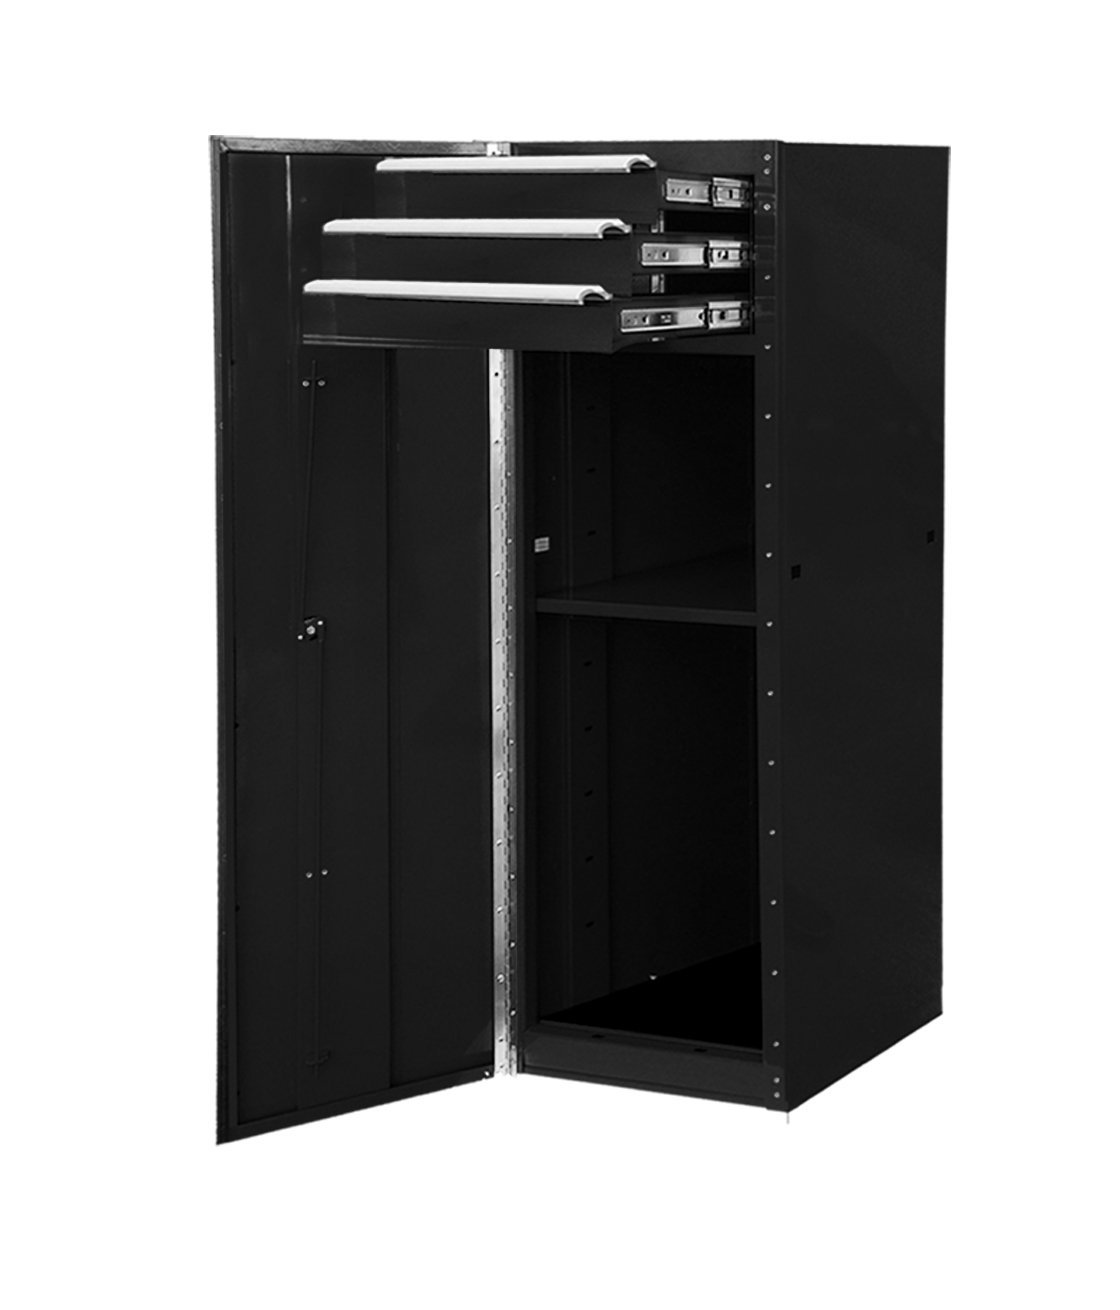 Extreme Tools EX1603SCBK 3-Drawer 1-Shelf Side Cabinet with Ball Bearing Slides, 16-Inch, Black High Gloss Powder Coat Finish